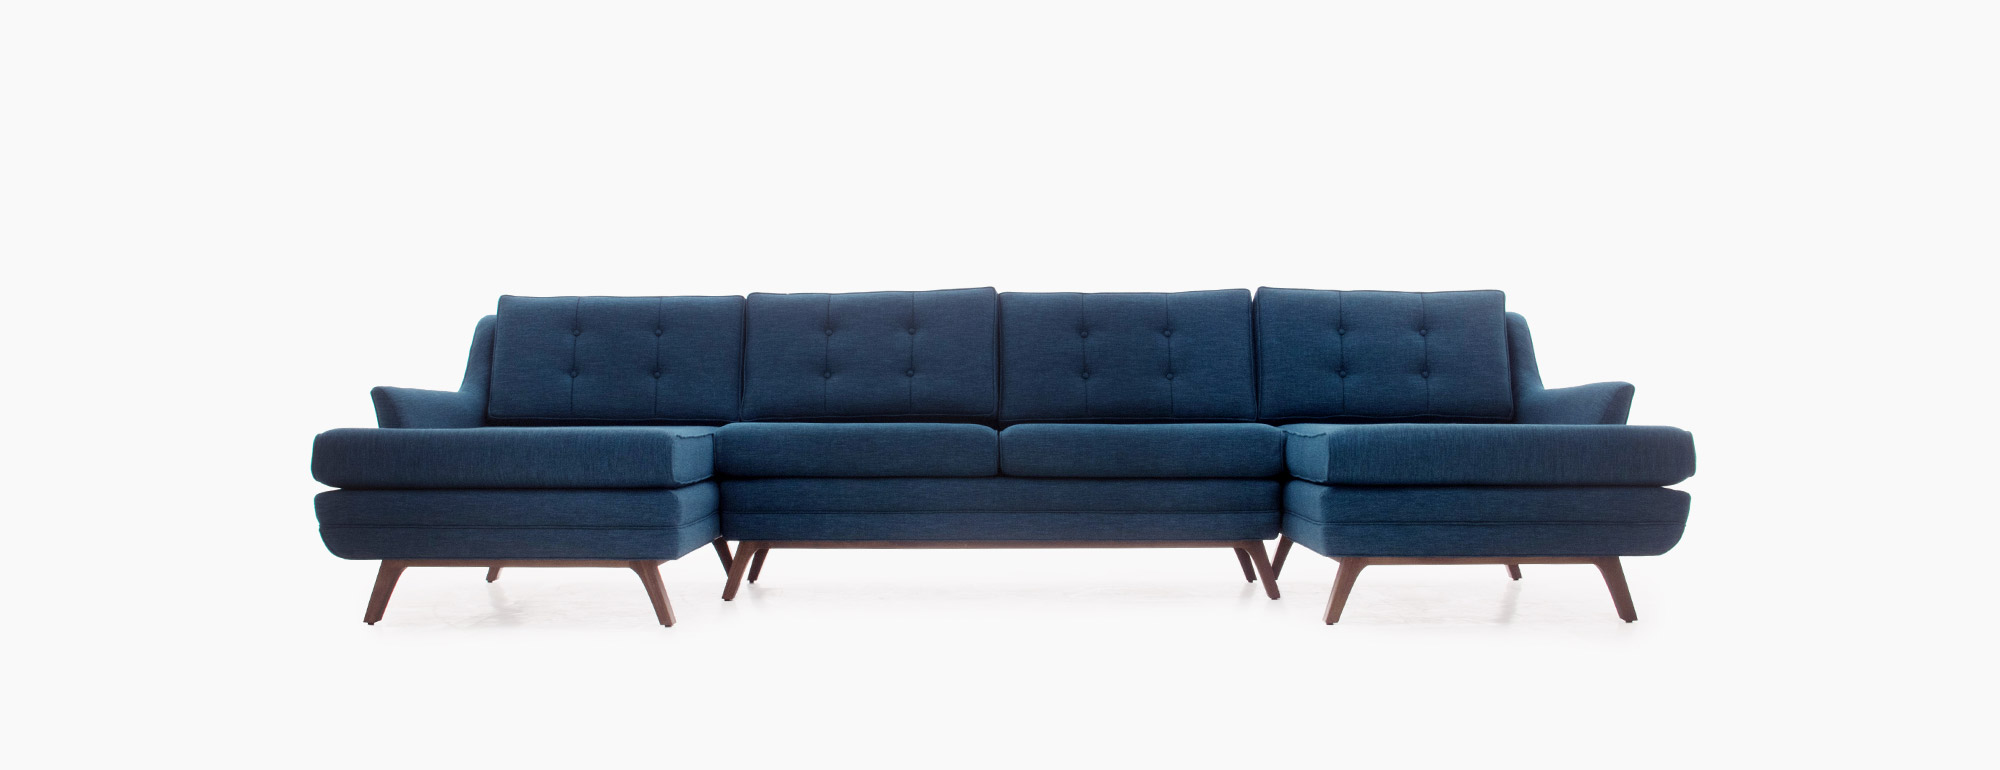 hero-eastwood-u-chaise-sectional-1